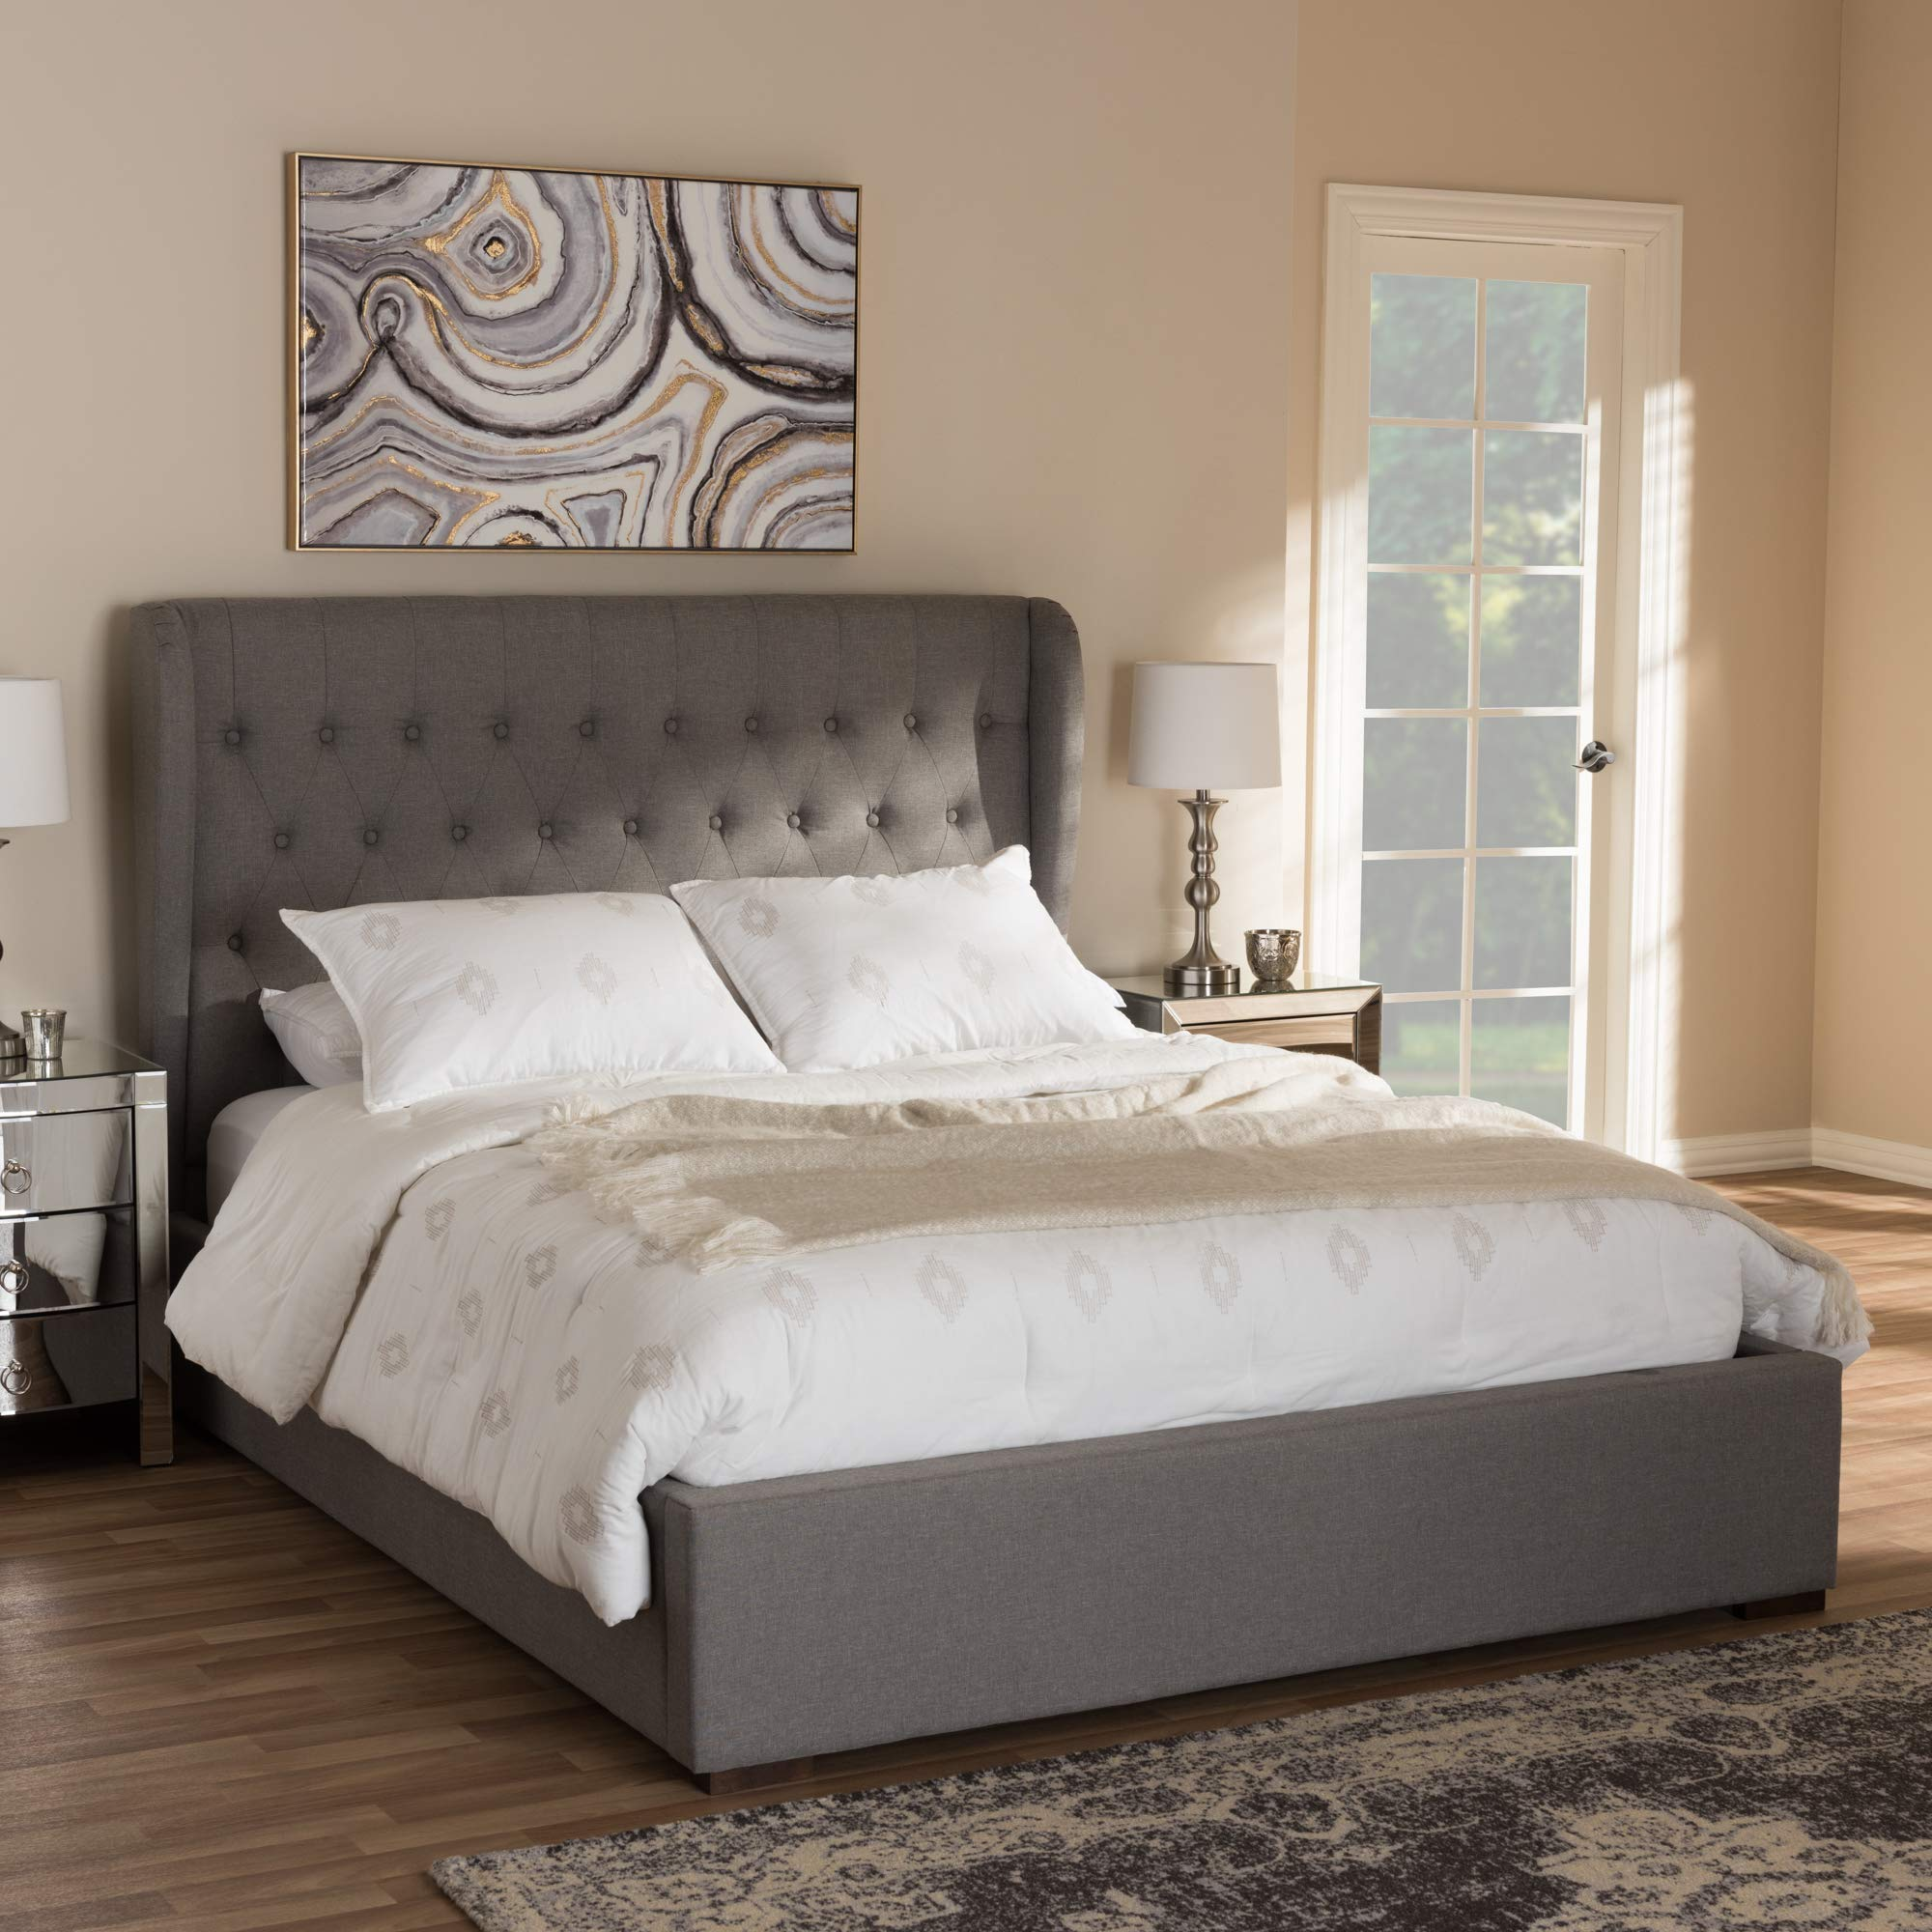 Baxton Studio Taylor Modern and Contemporary Light Grey Fabric Queen Size Gas-Lift Platform Bed Contemporary/Light Grey/Fabric Polyester 100%''/Rubber Wood/MDF/Particle Board/Foam/ by Baxton Studio